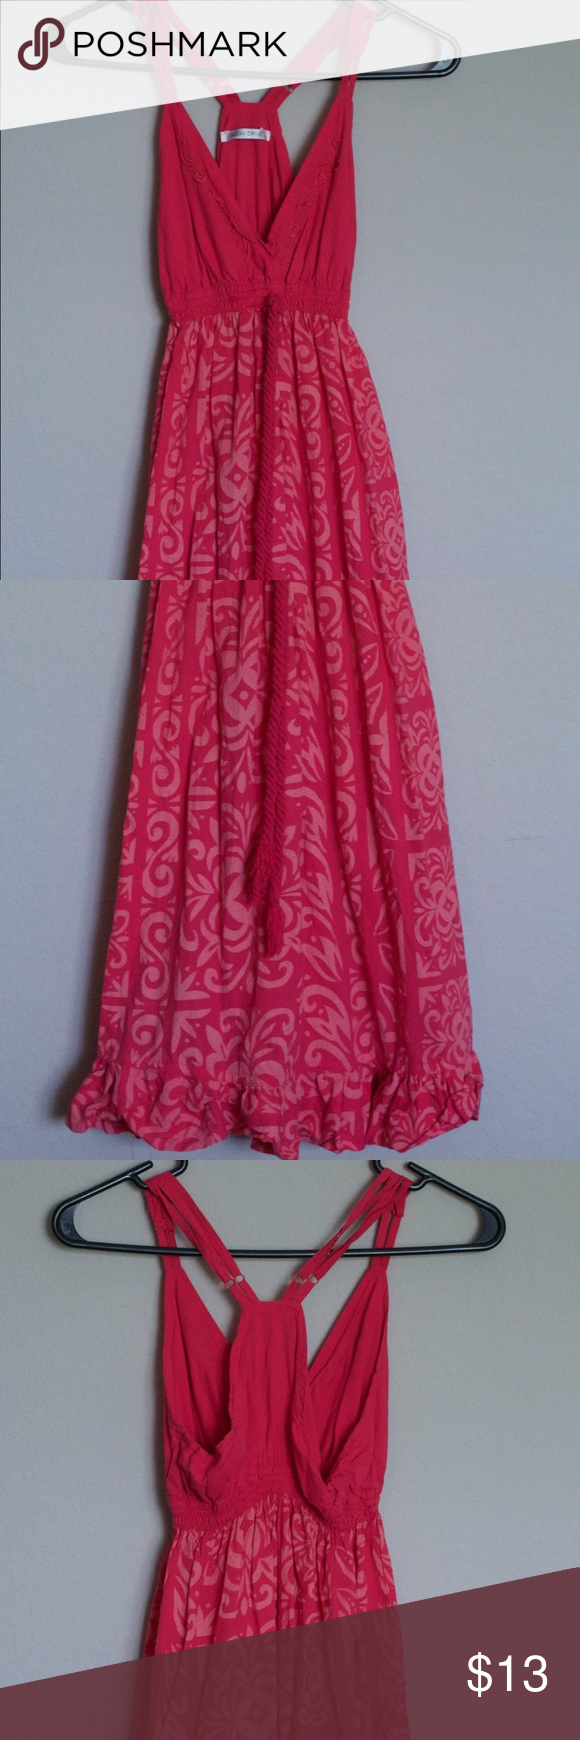 Pink Summer Dress Pink deep V-neck dress and above the knee. Better for smaller chest. Says it's a size L but wears more like a S. Ocean Drive Dresses Mini